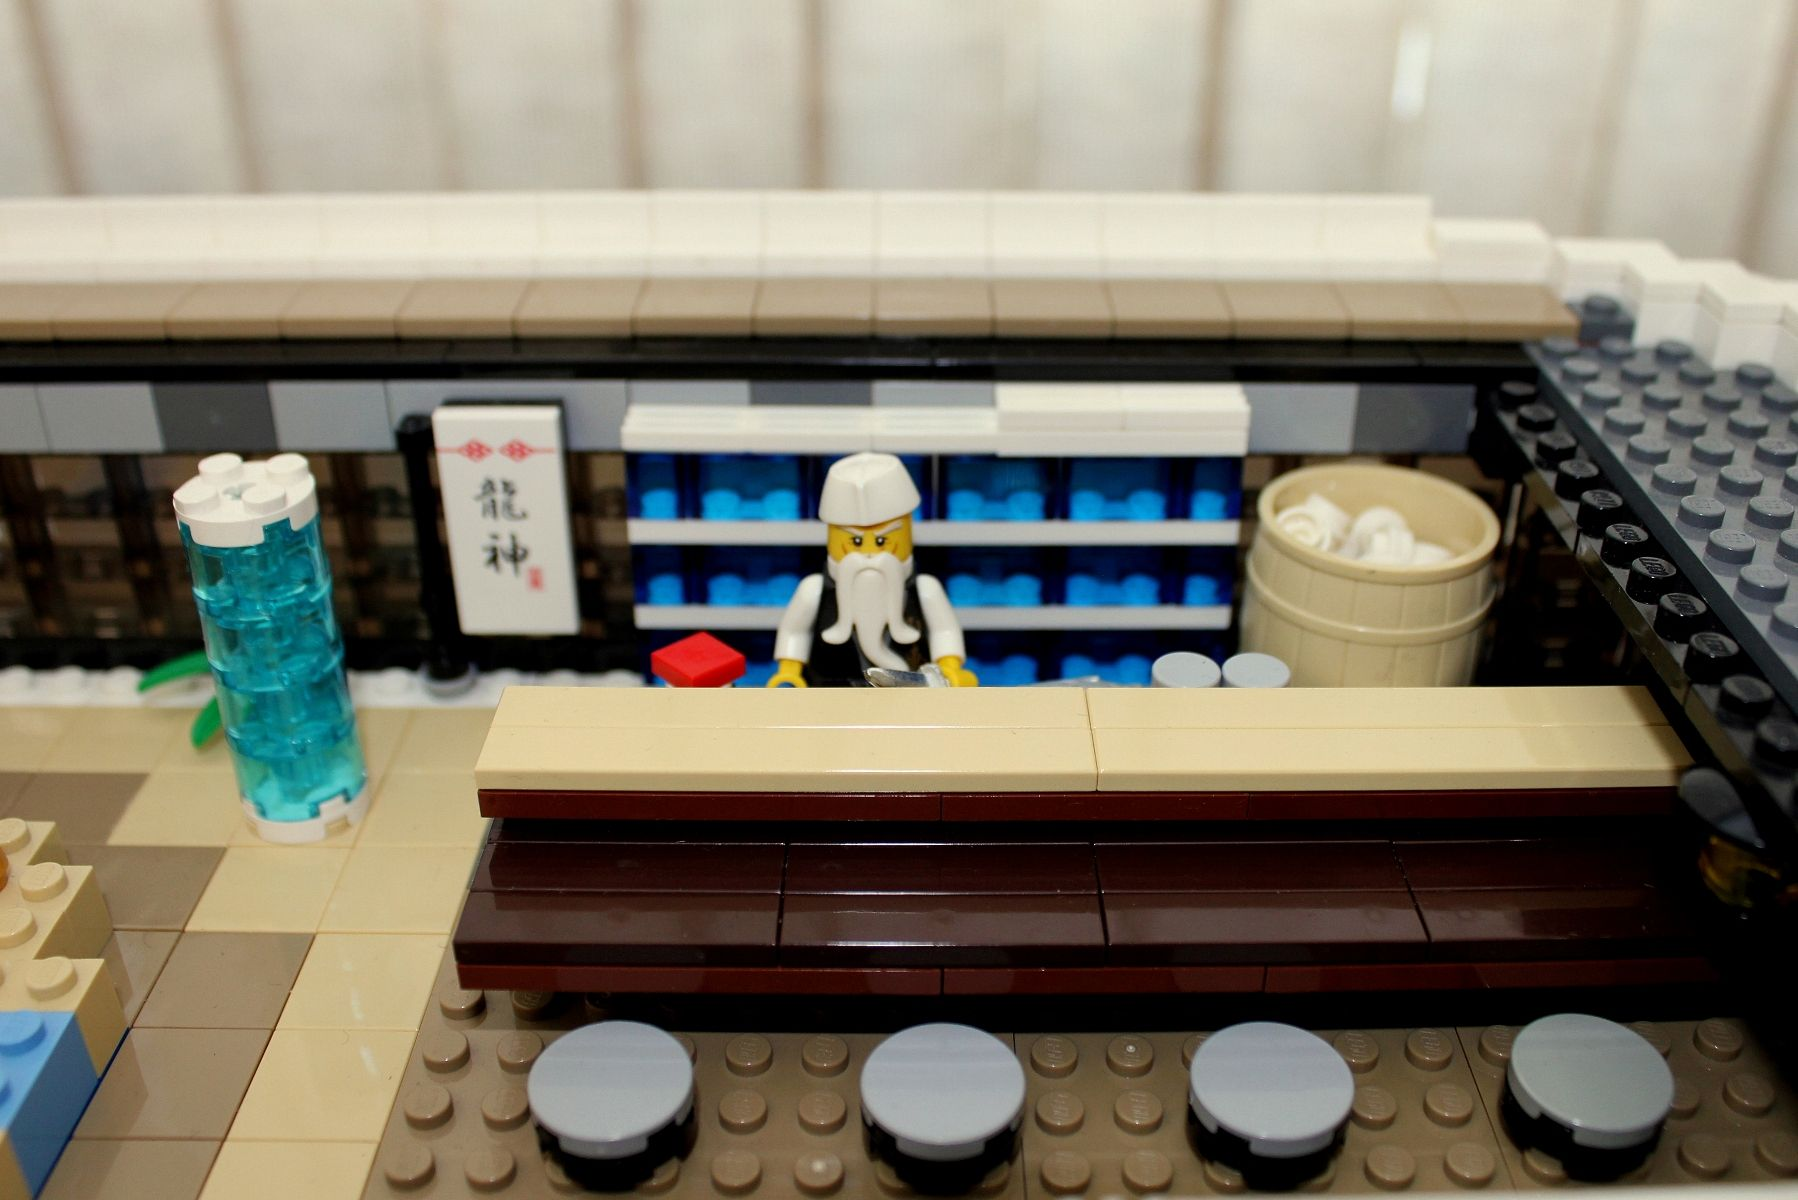 LEGO Mega-Yacht Floor 4 Sushi Bar by Keith Orlando